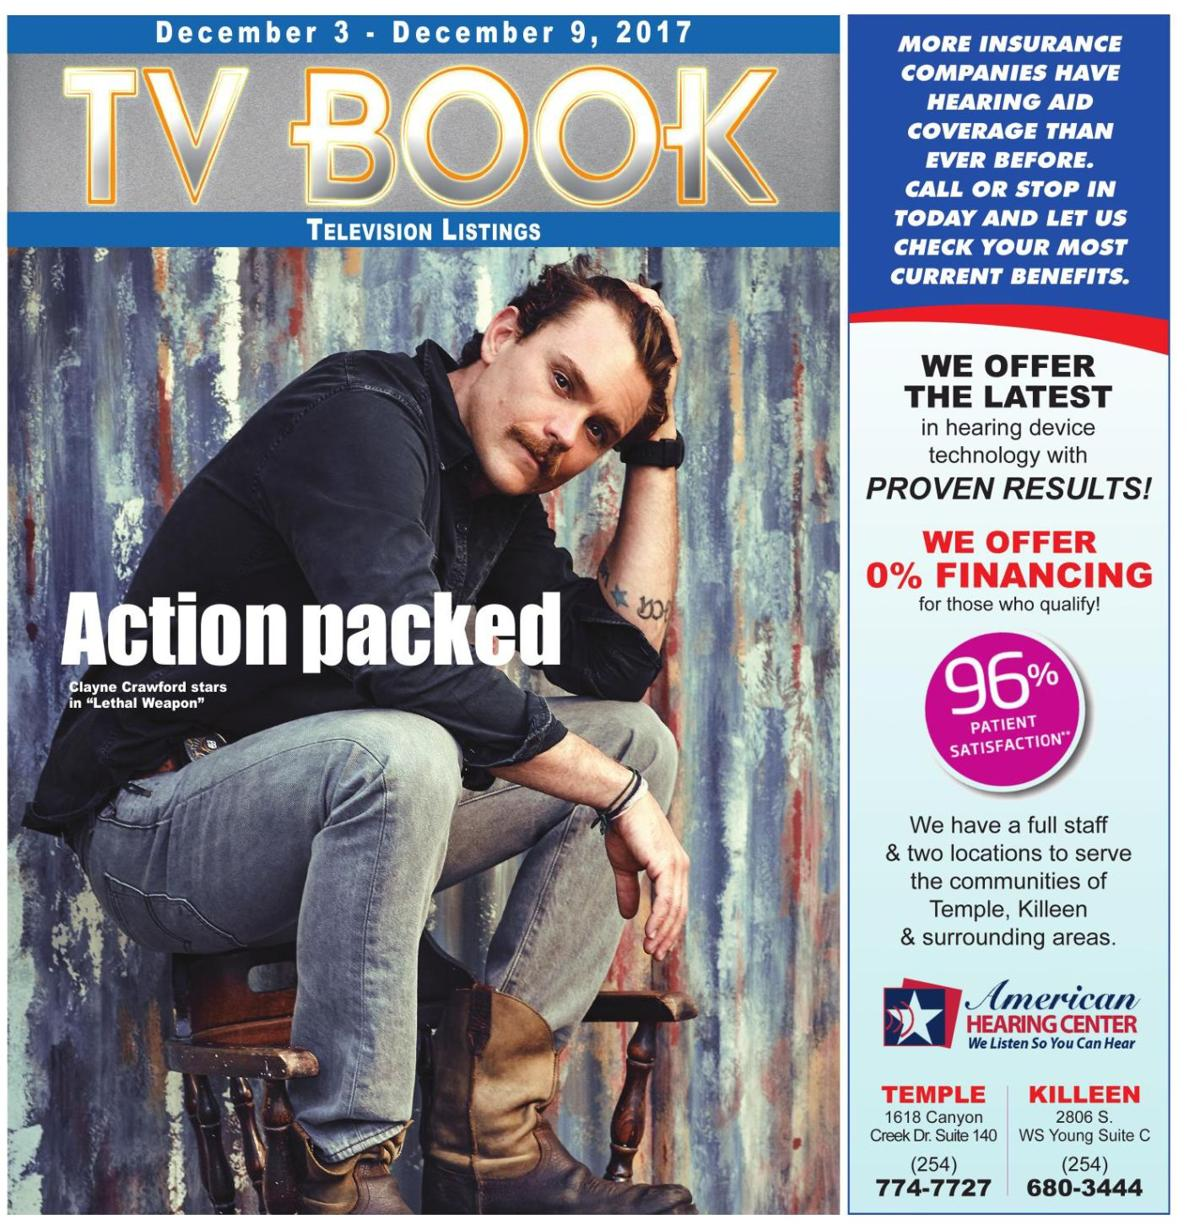 TV Book ~ Dec. 3rd - Dec. 9th